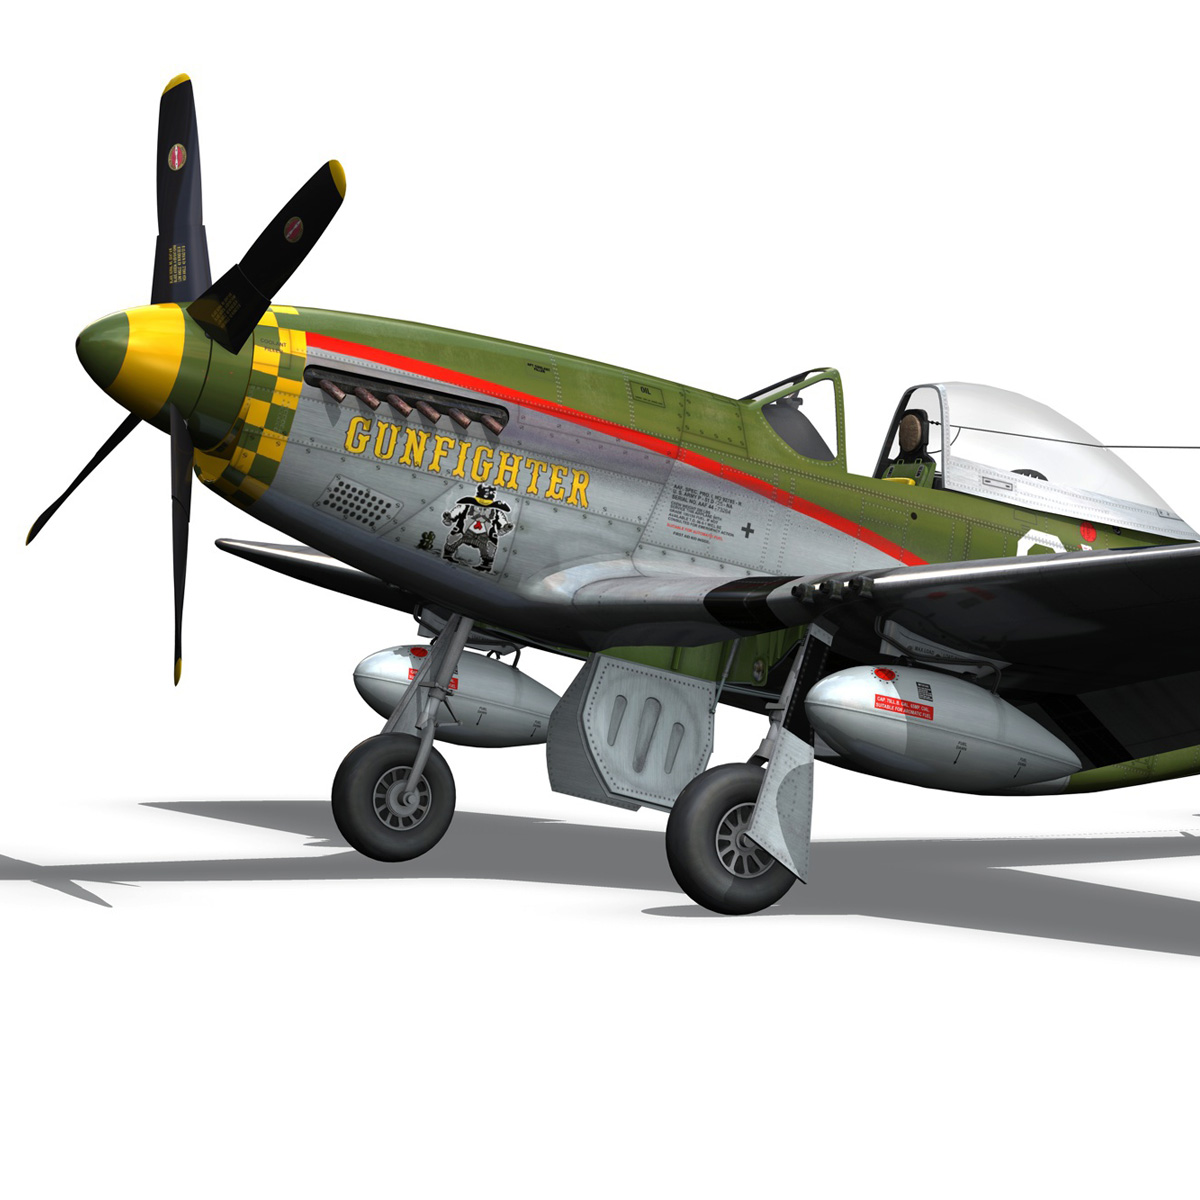 north american p-51d mustang – gunfighter 3d model fbx c4d lwo obj 269578